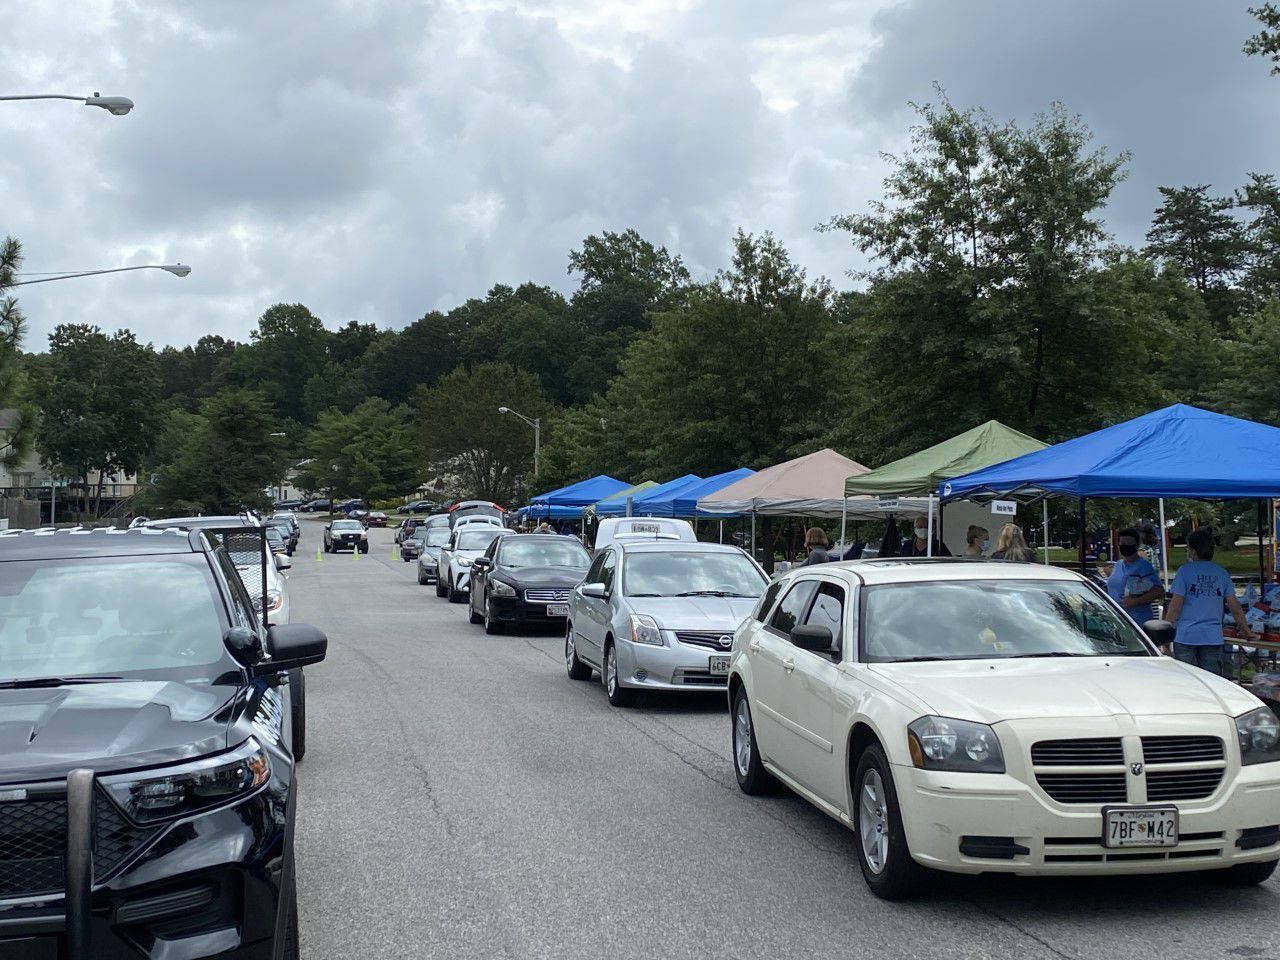 La Plata Police holds seventh annual block party